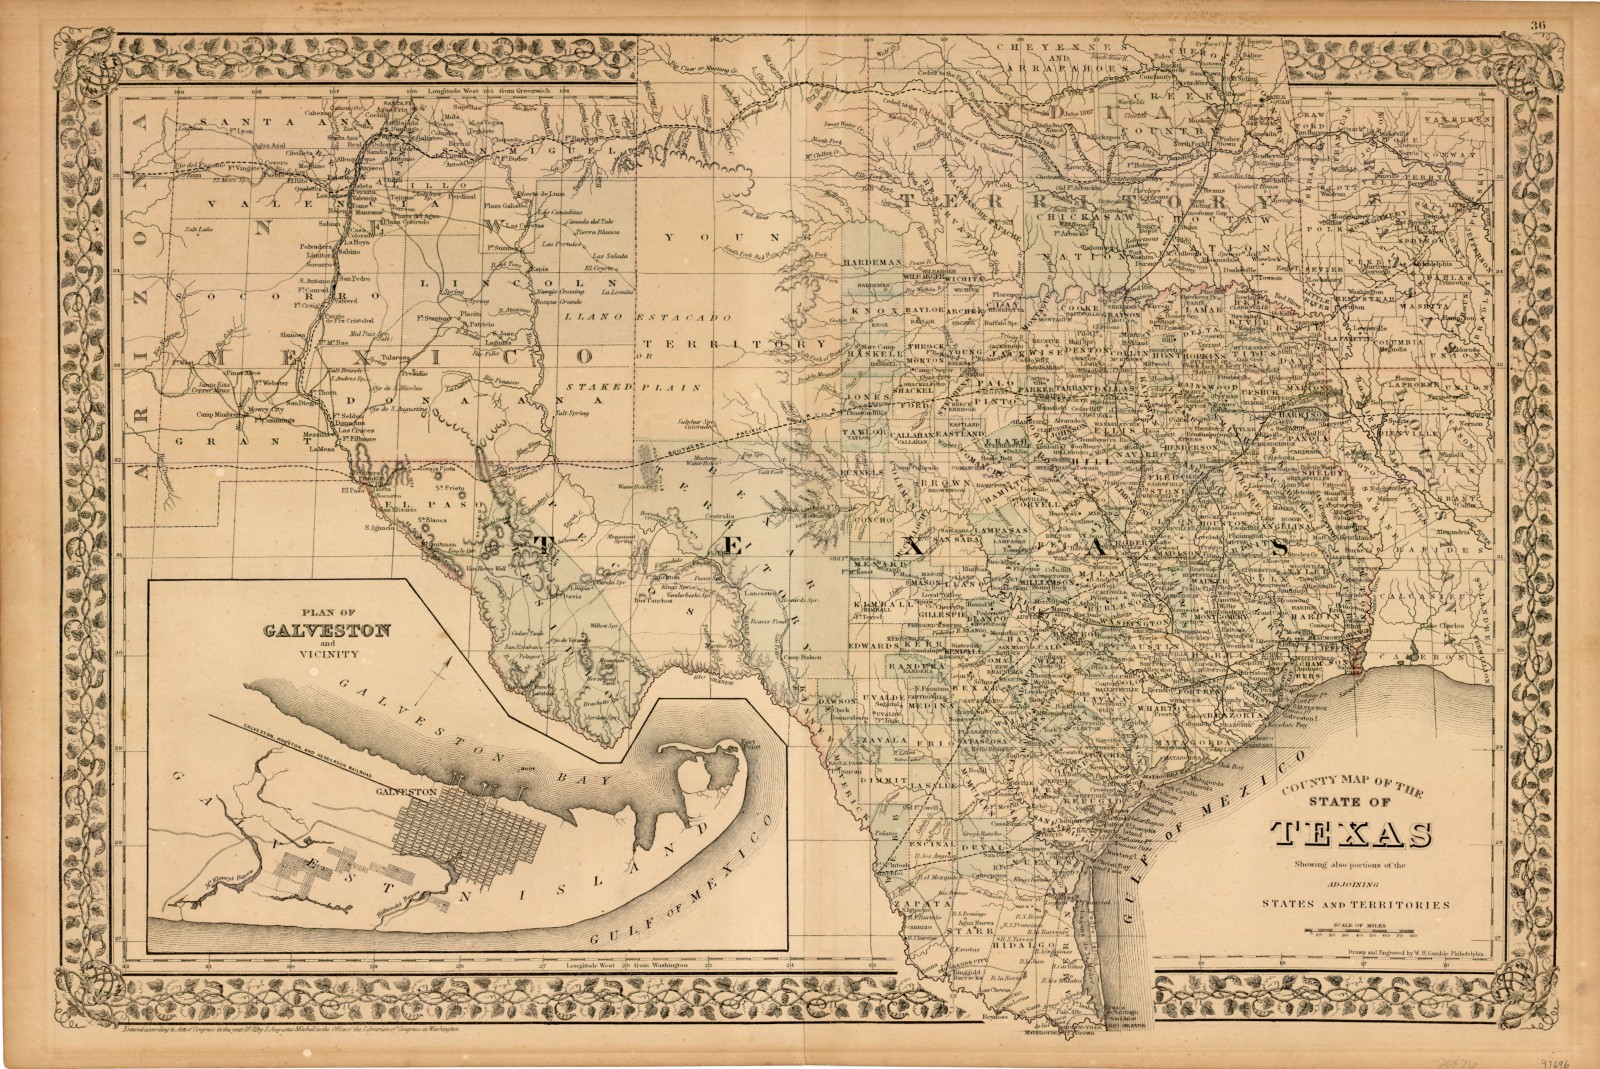 Map Of Central Texas Counties.County Map Of The State Of Texas 1873 By W H Gamble